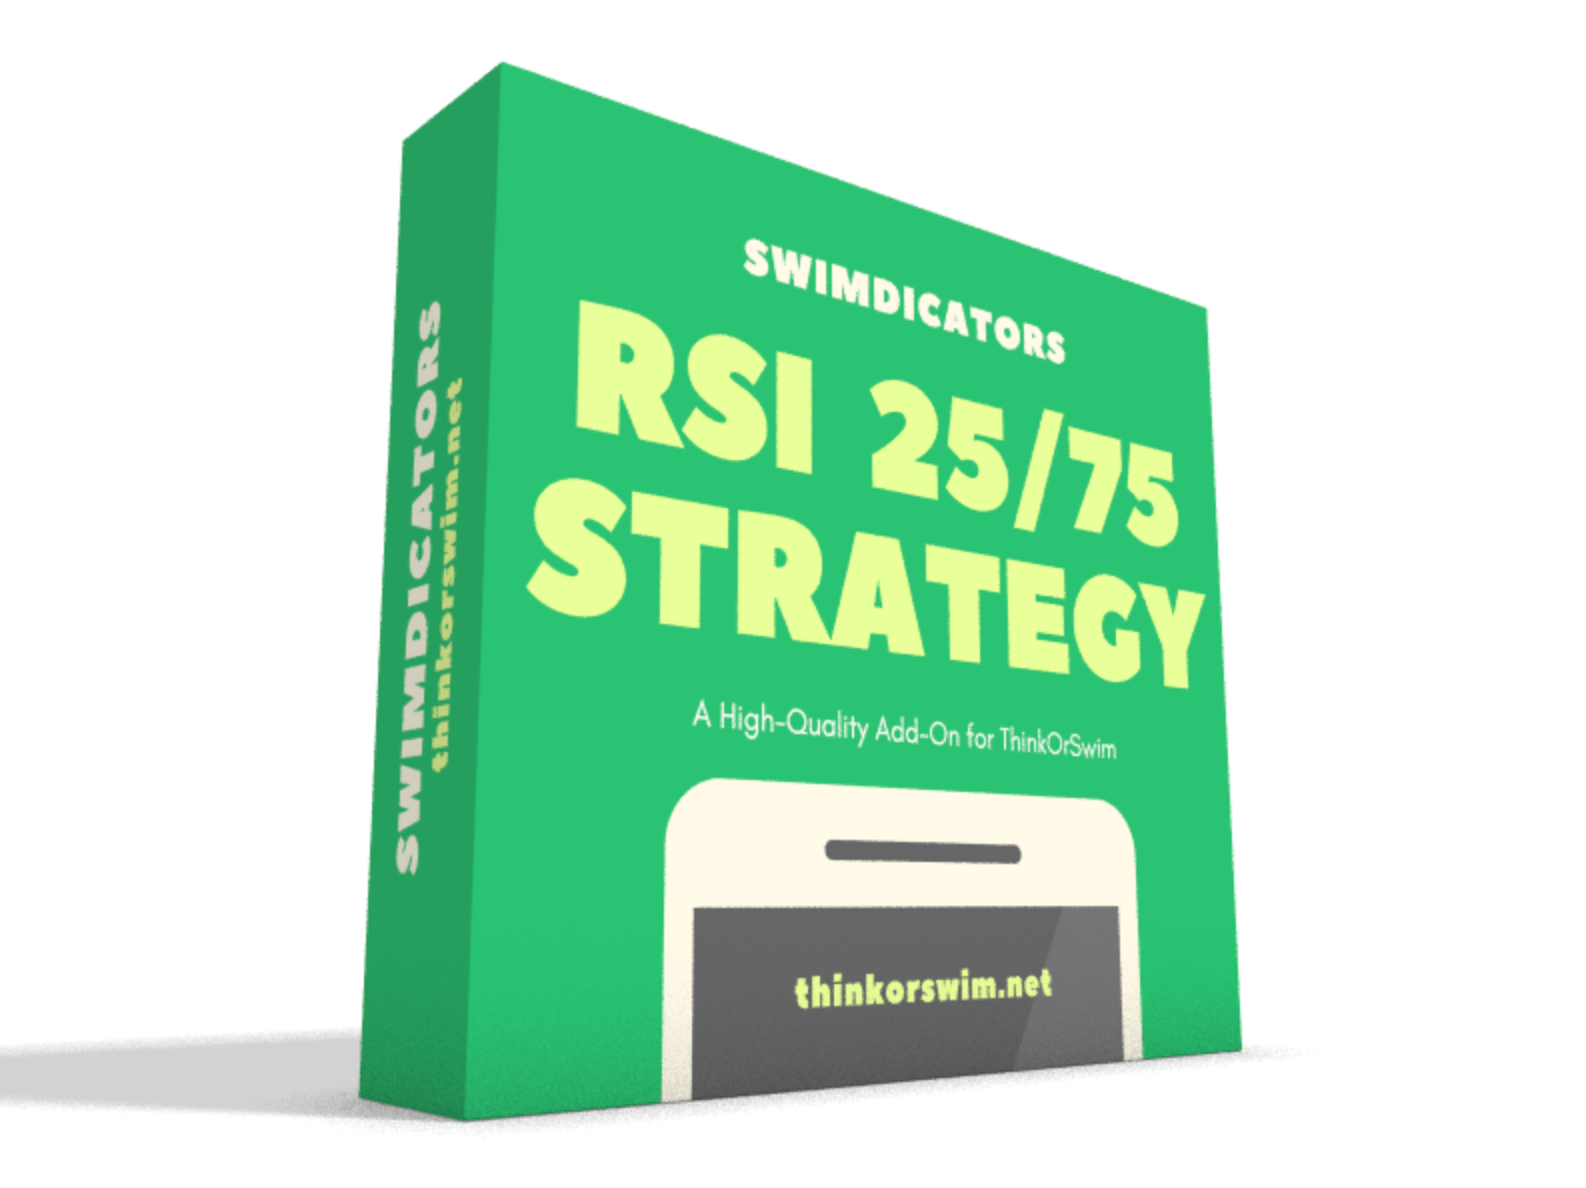 Rsi 25/75 long strategy